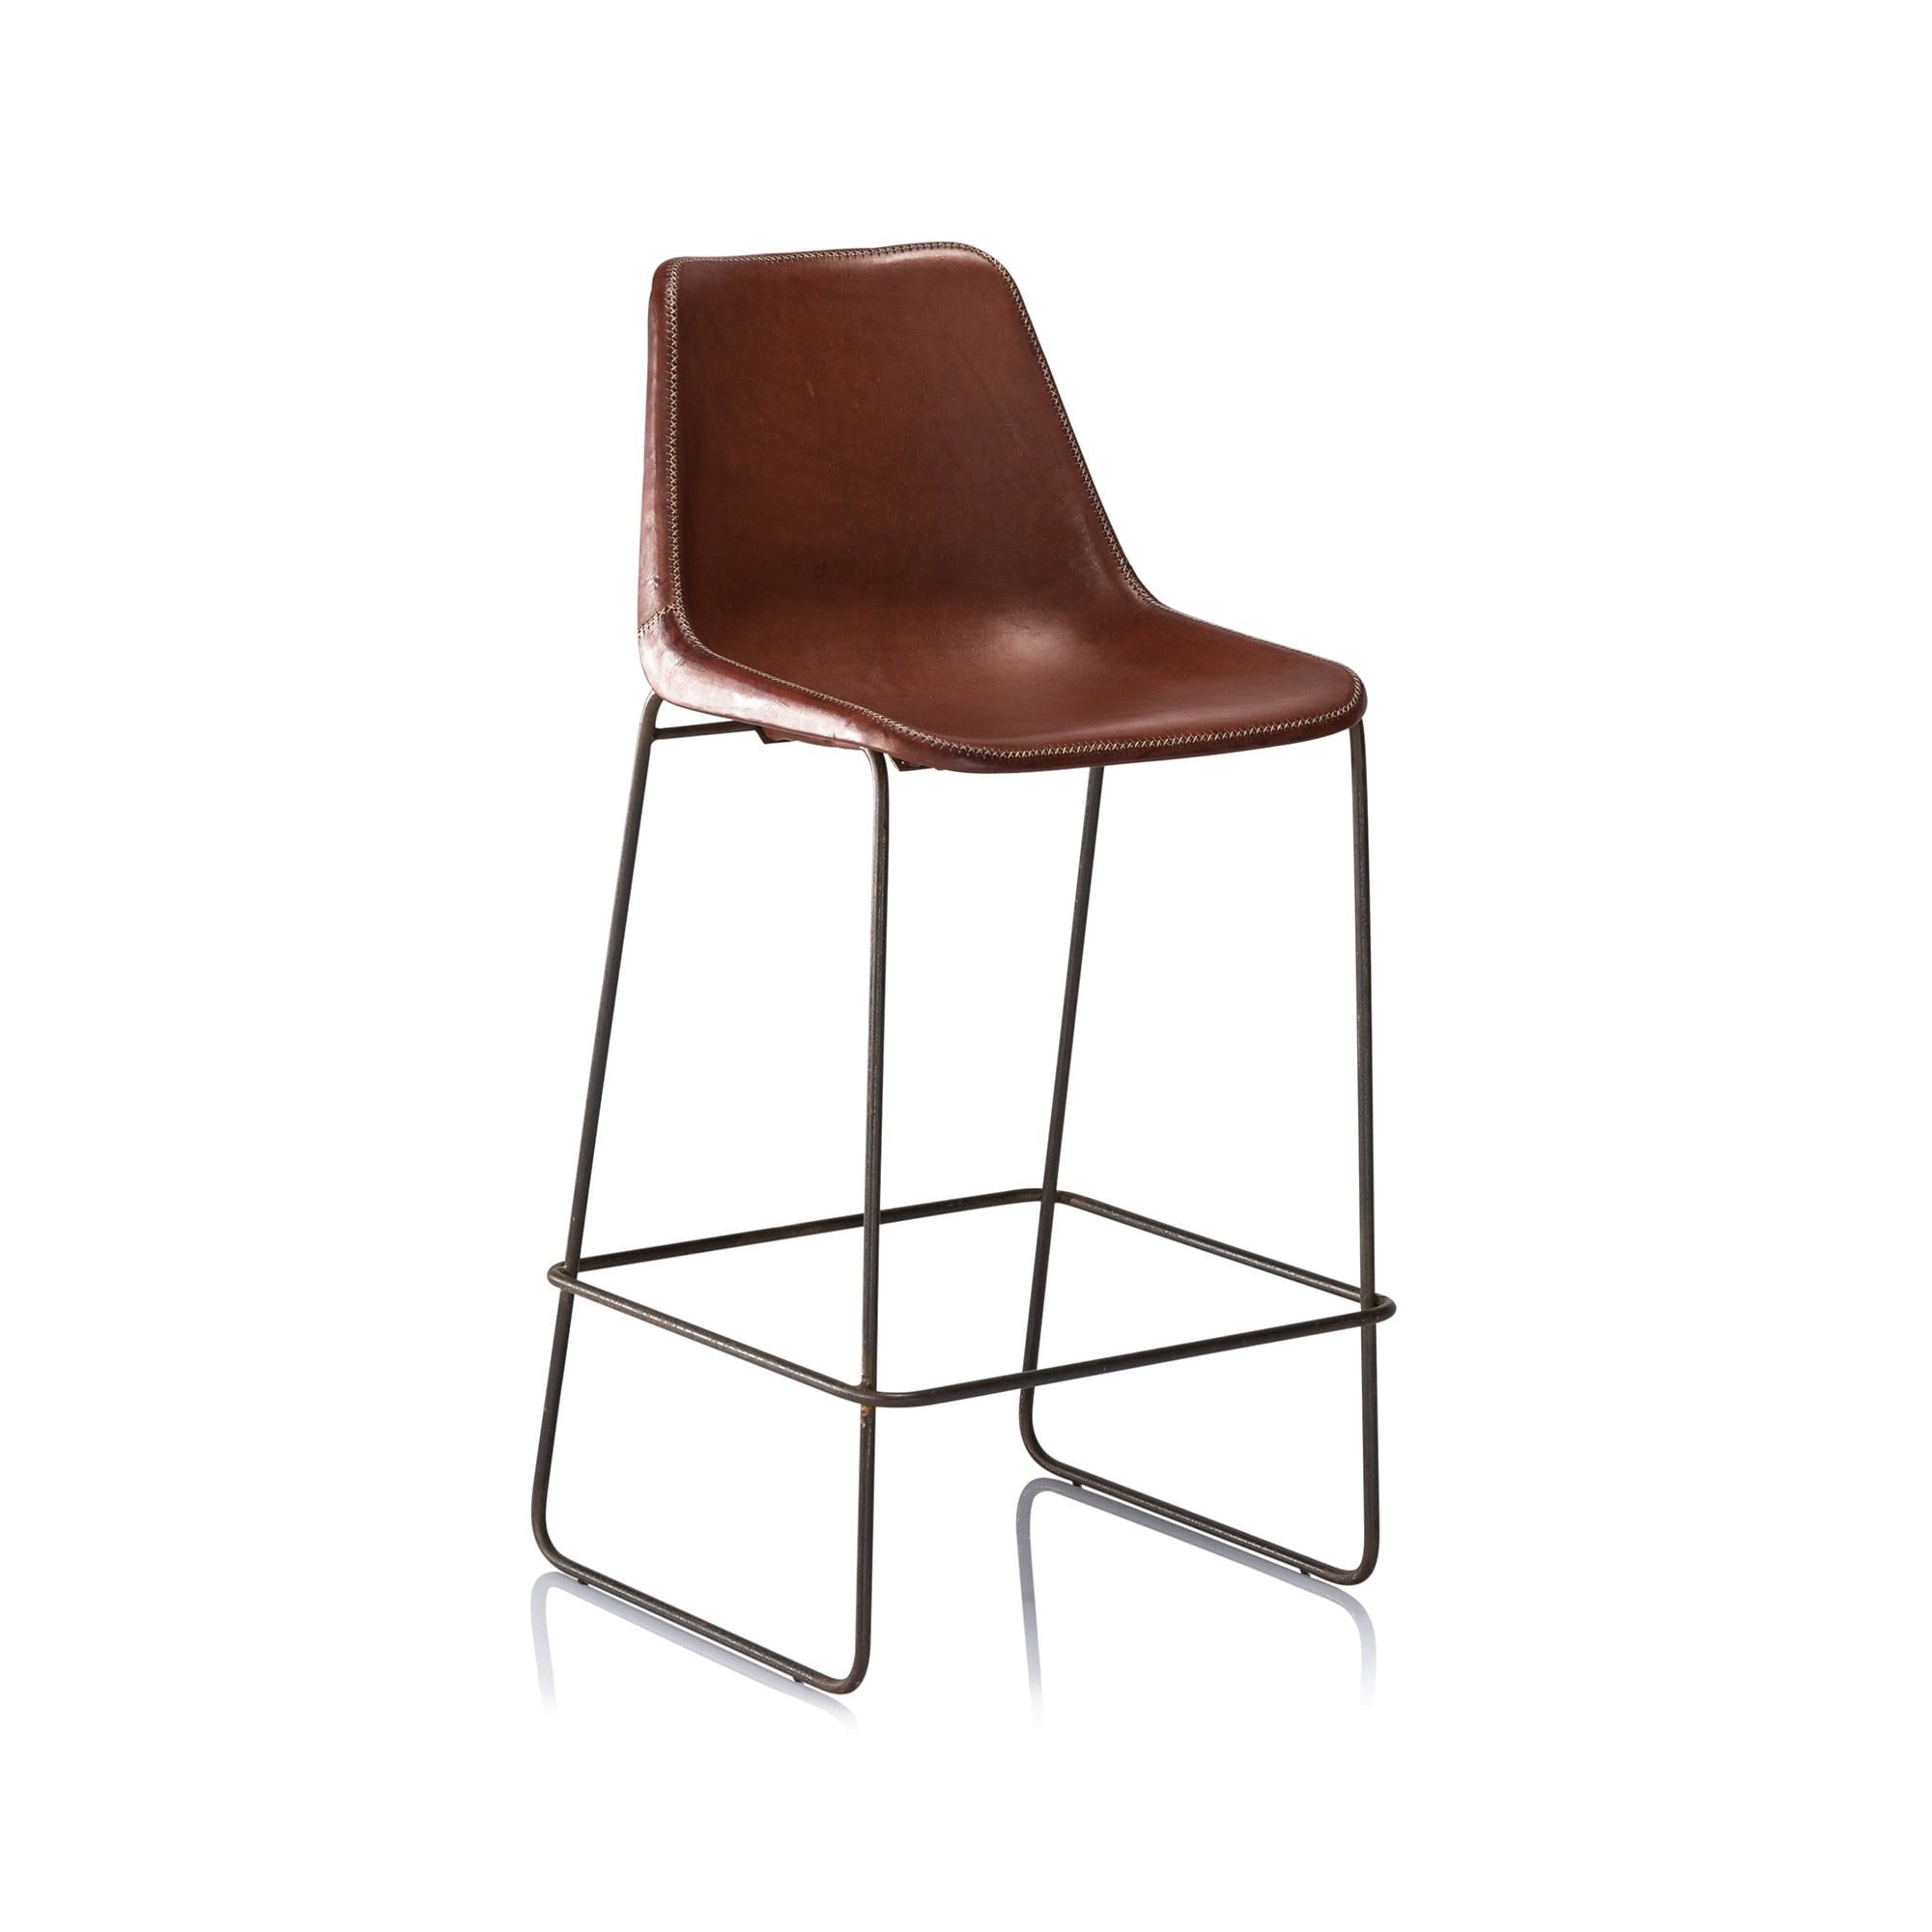 Horizon hudson brown leather bar stool